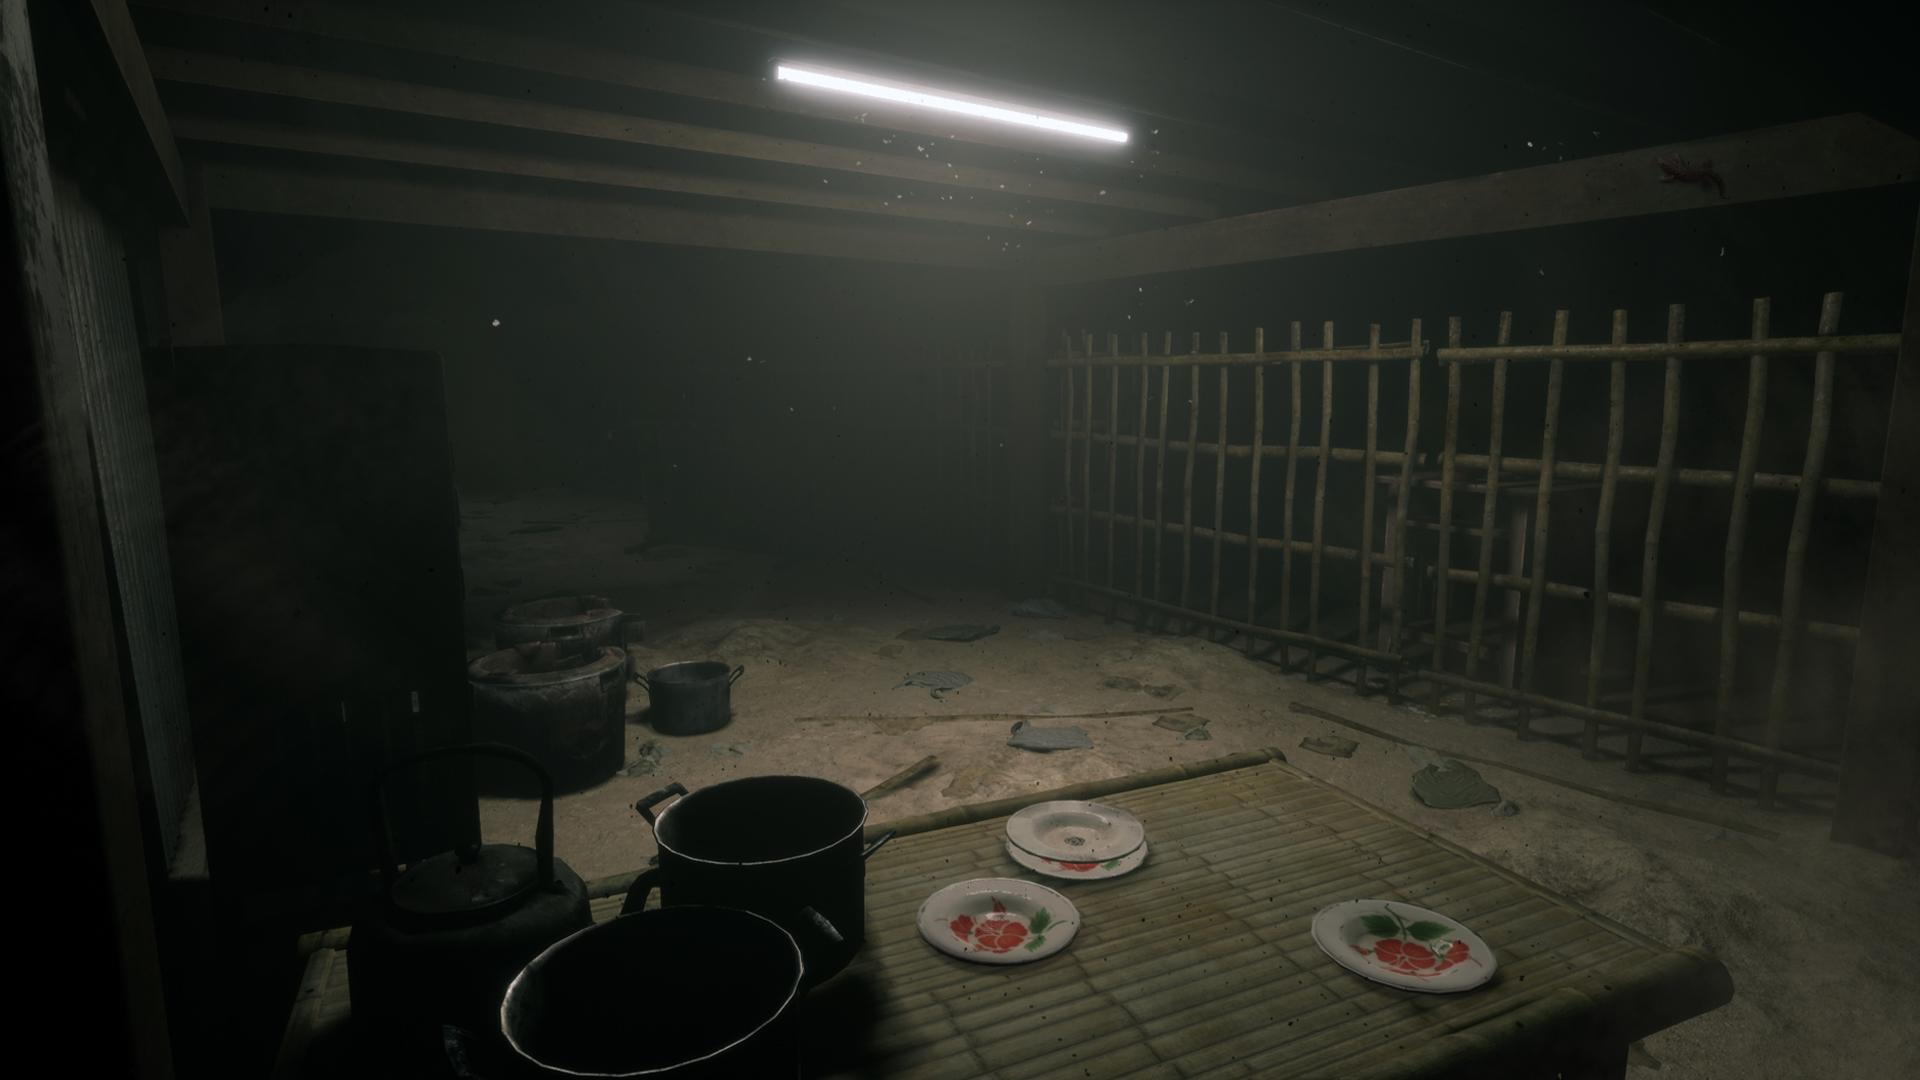 Home Sweet Home Wallpaper Full Hd Home Sweet Home Horror Game Apk 1961433 Hd Wallpaper Backgrounds Download